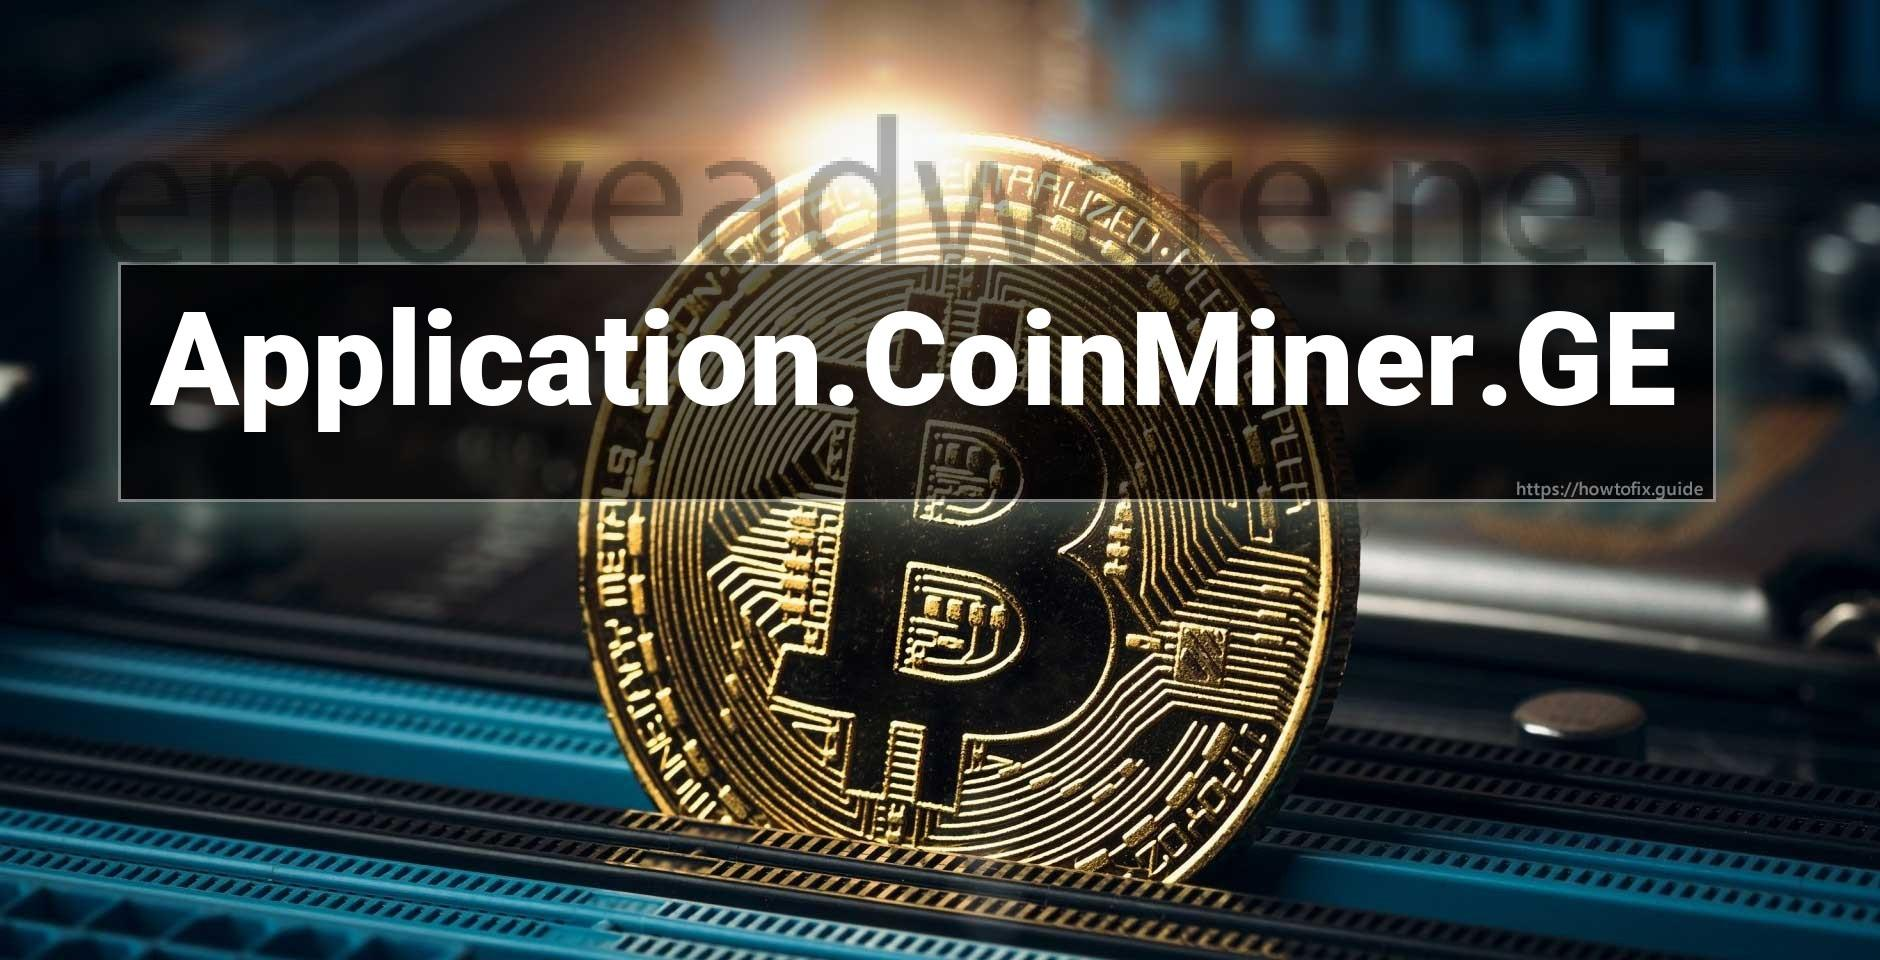 remove Application.CoinMiner.GE